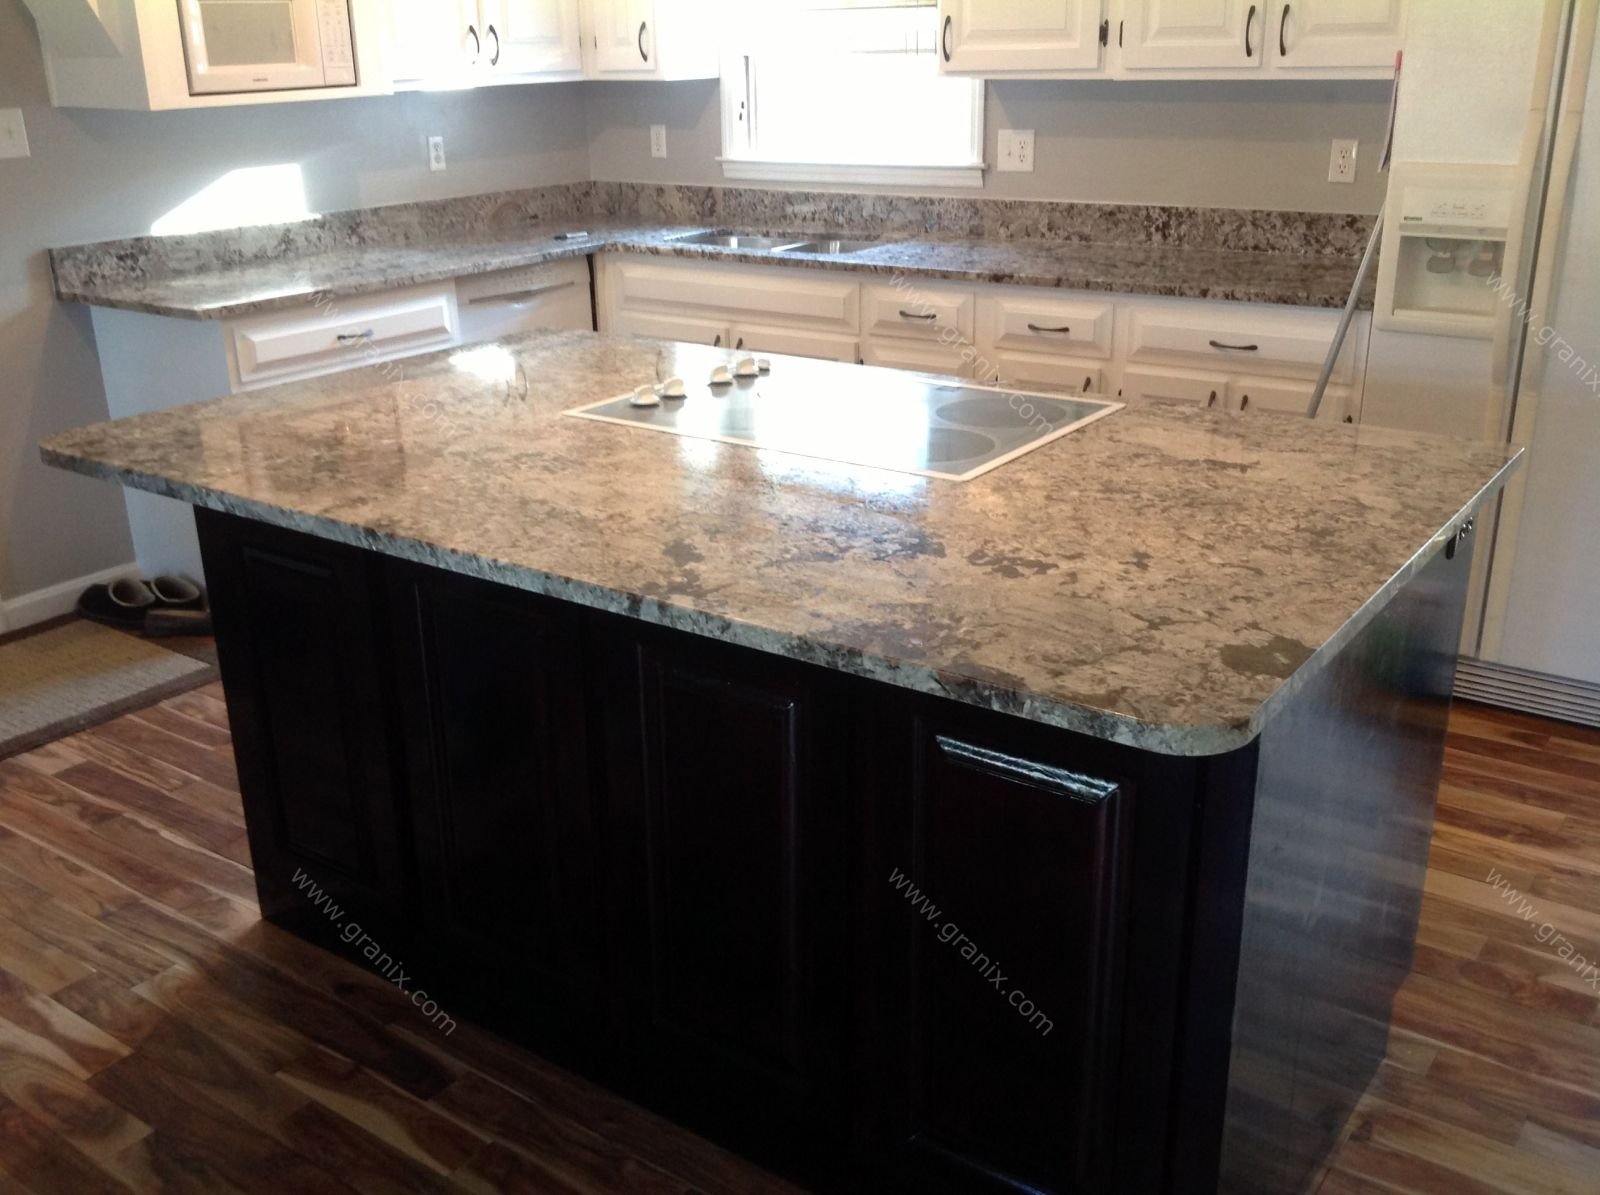 In The Kitchen: Bianco Antico One Of The Best Granite Color With Nice Grey ,